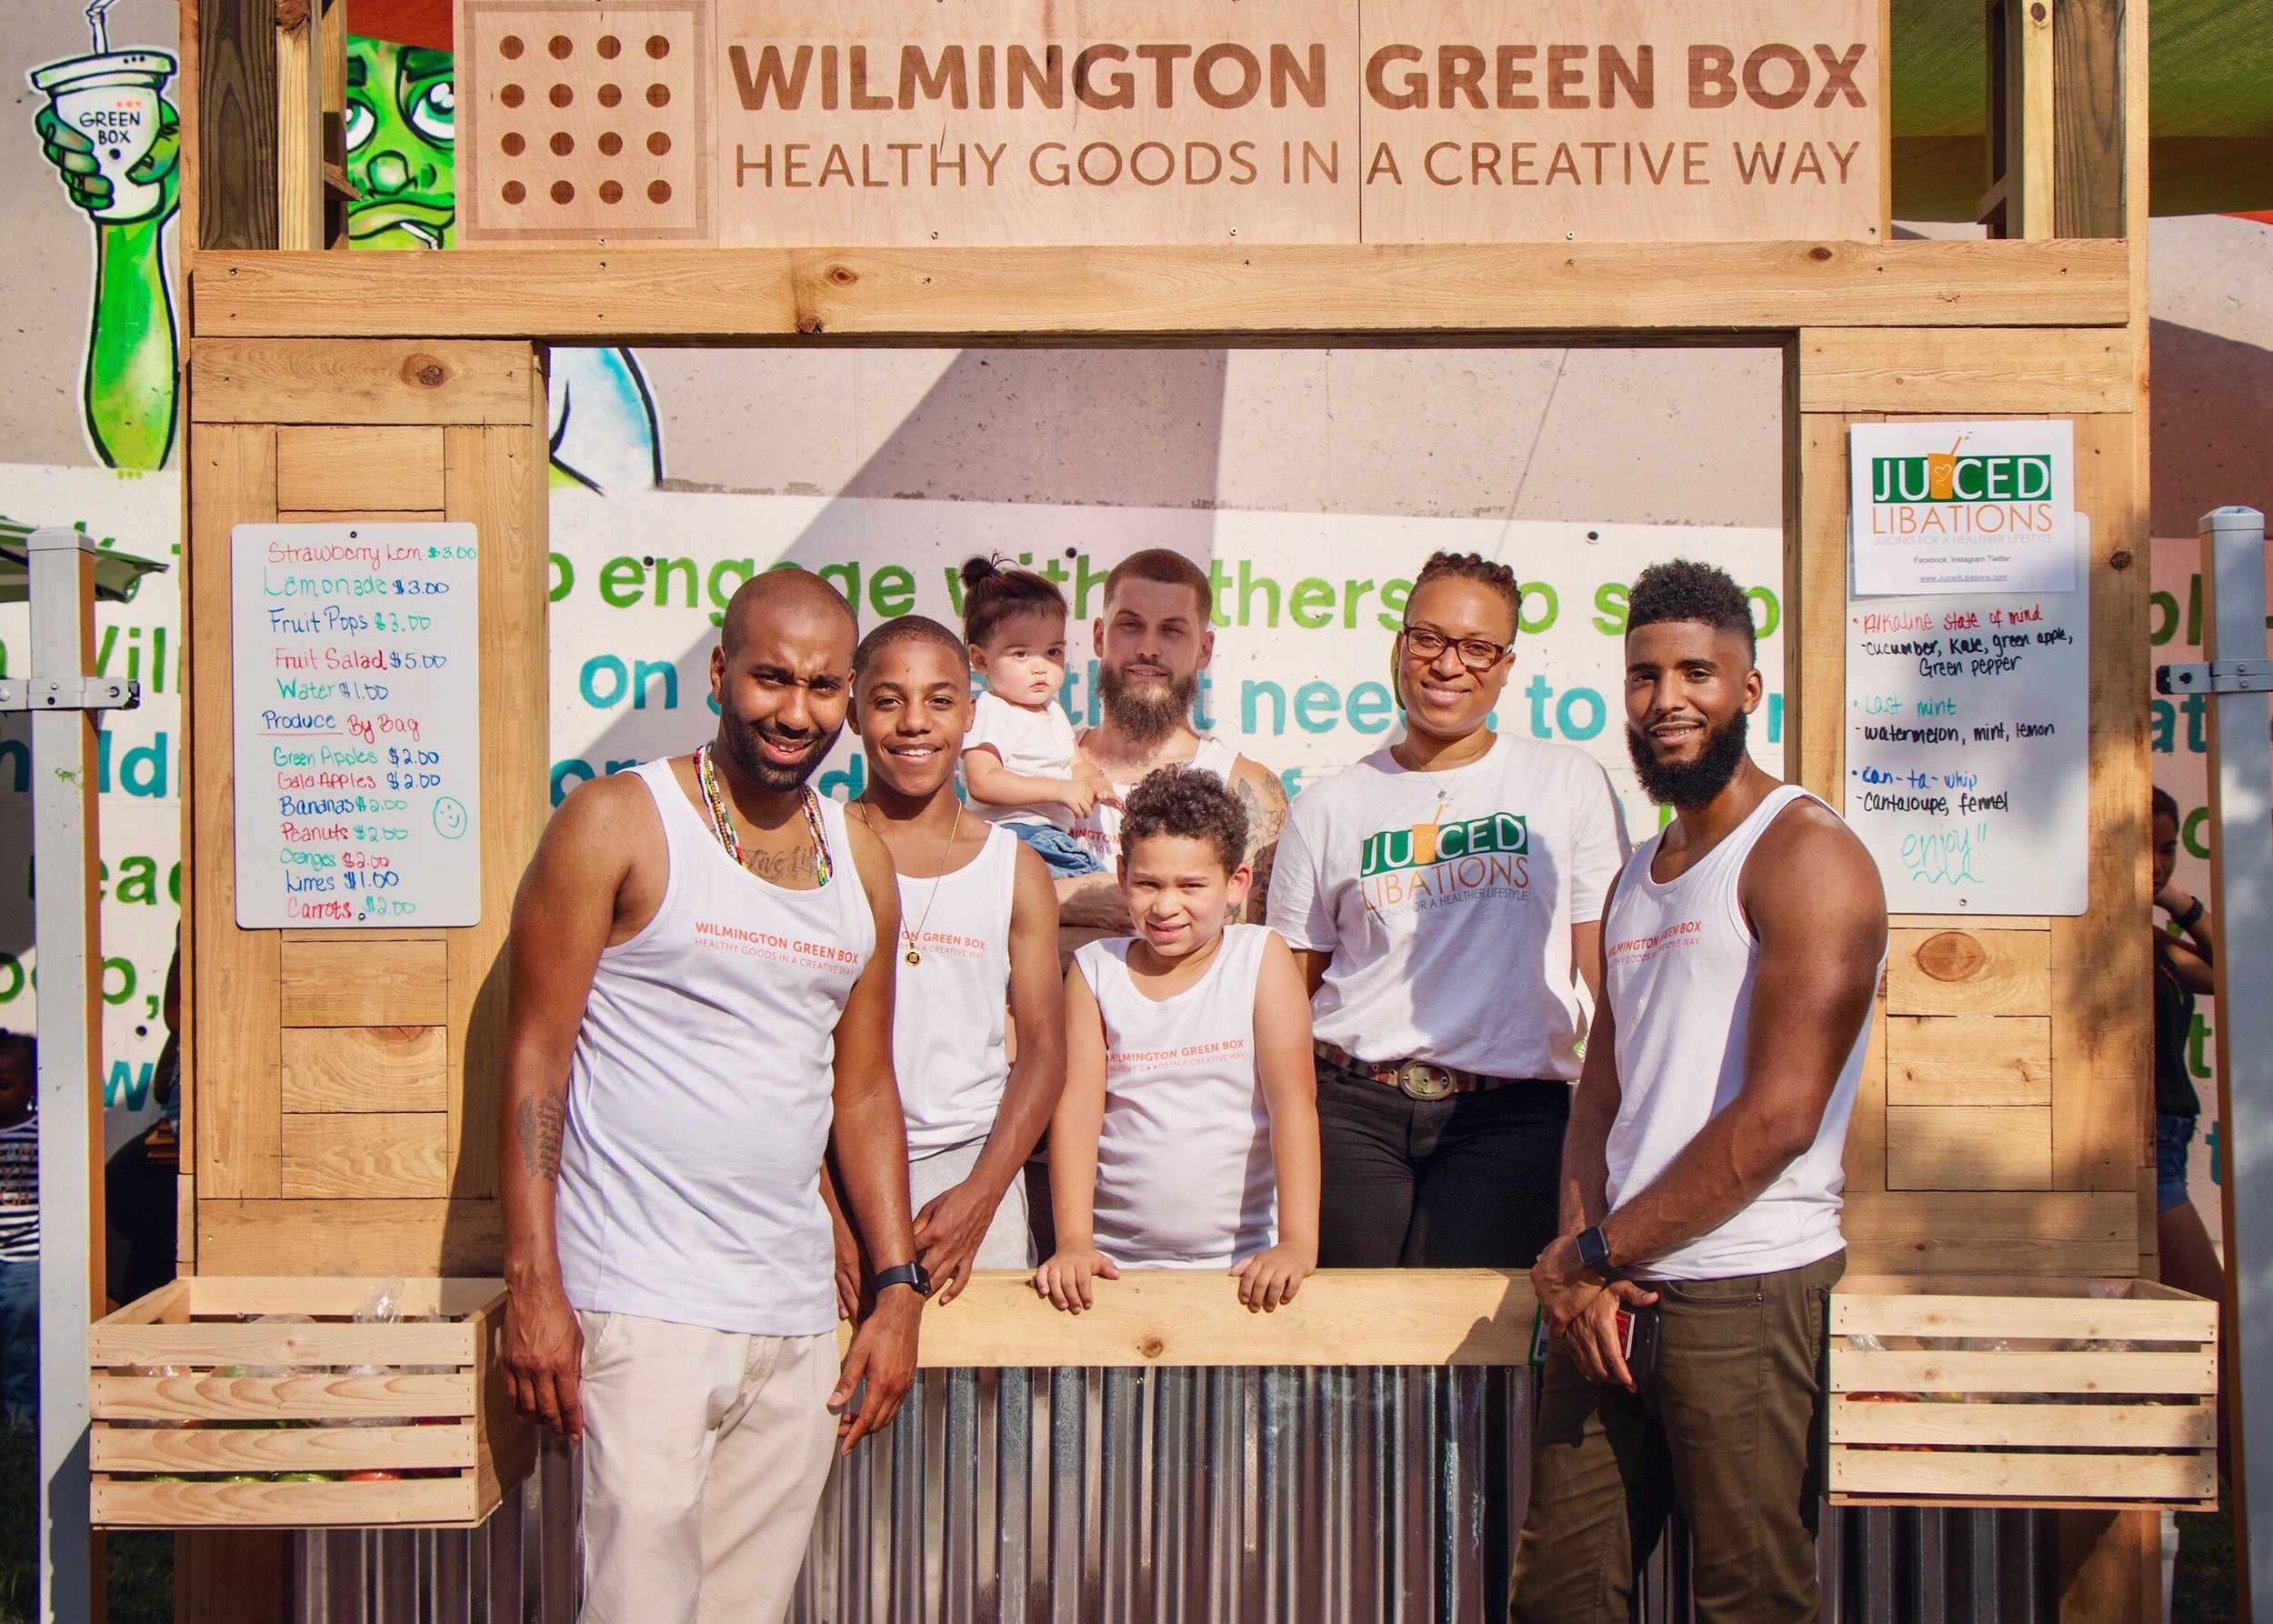 Wilmington Green Box